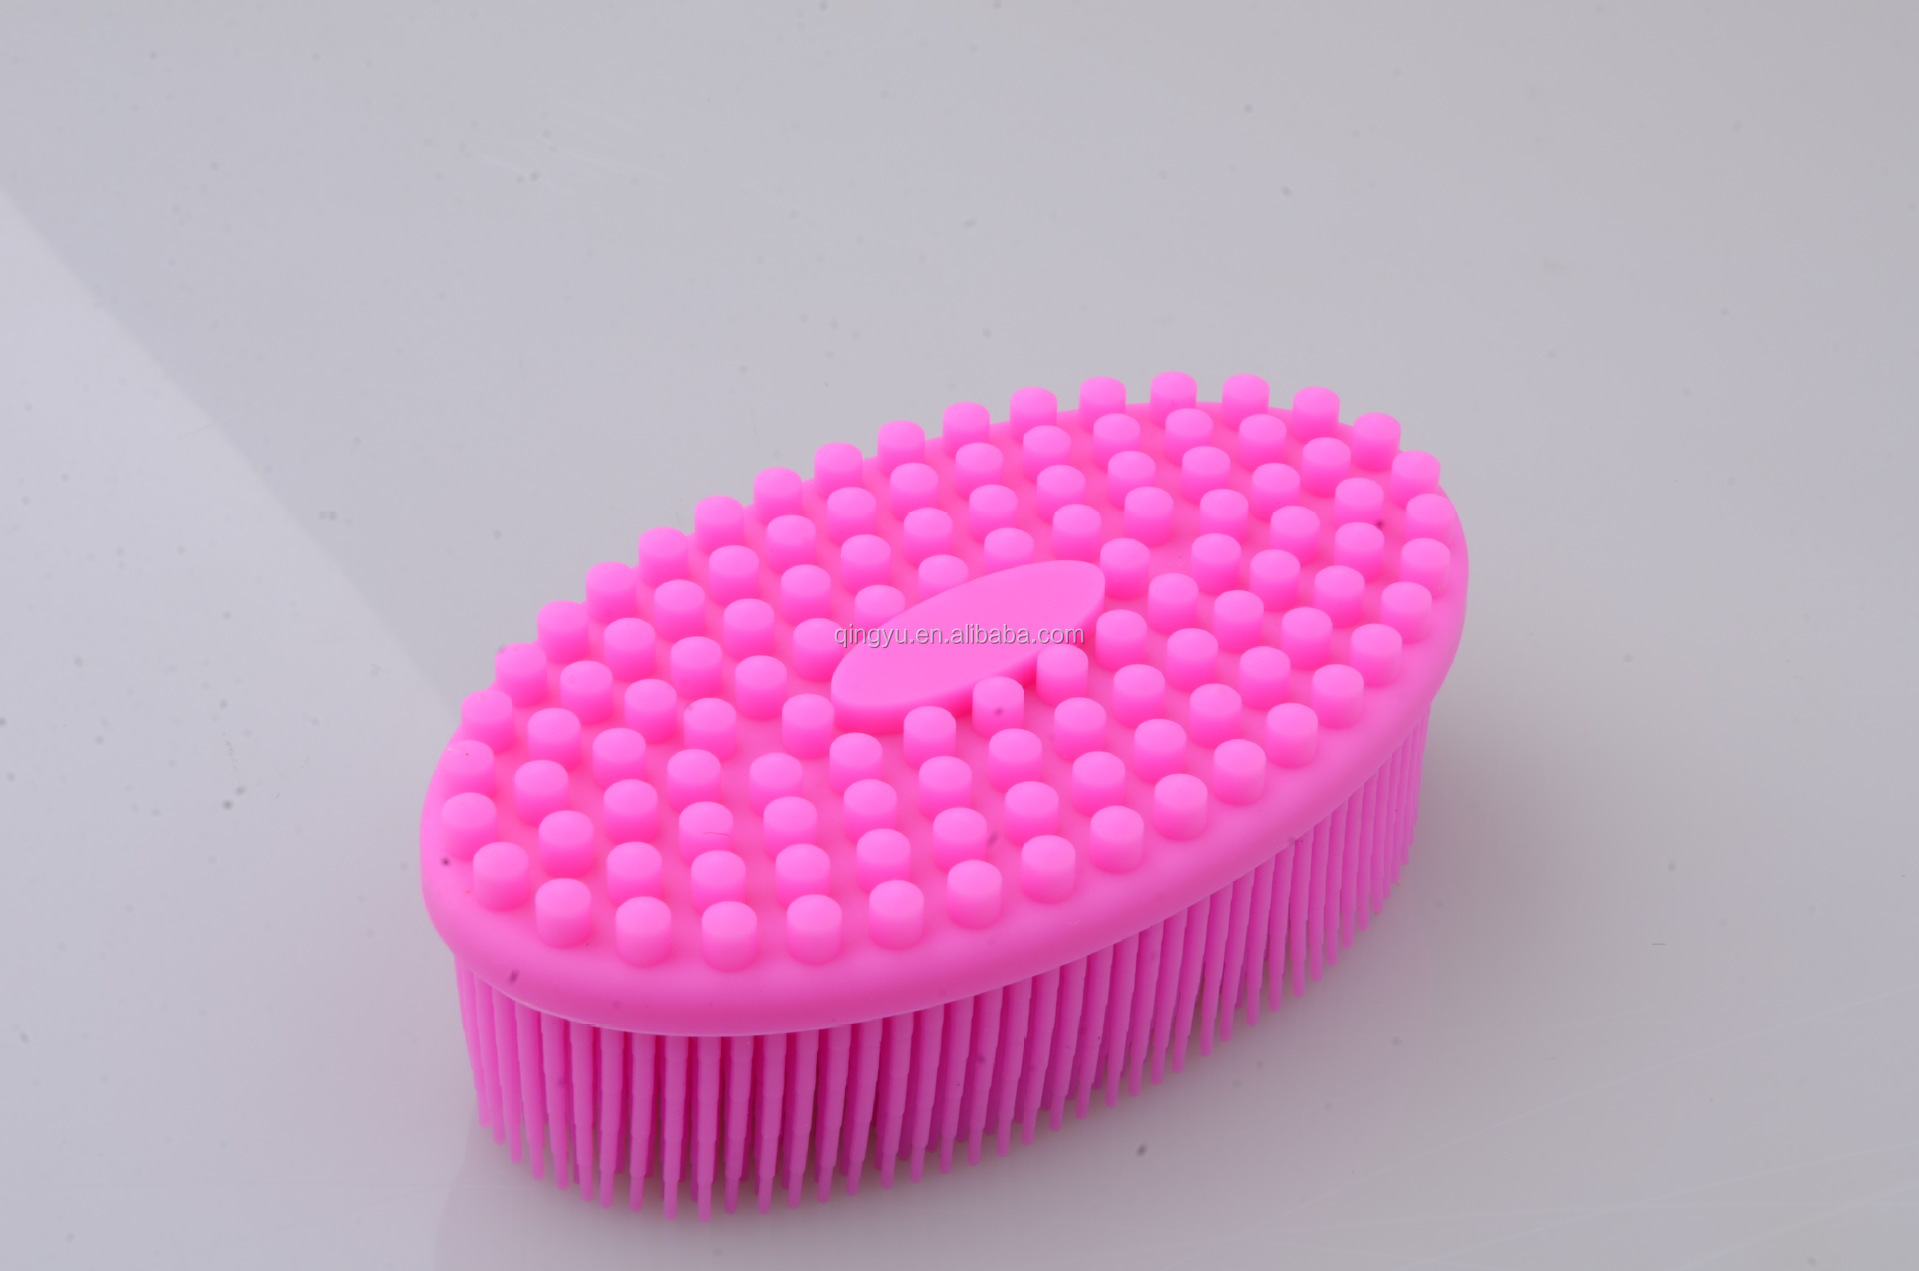 Super soft silicone shower brush for baby, bath brush, massage shower